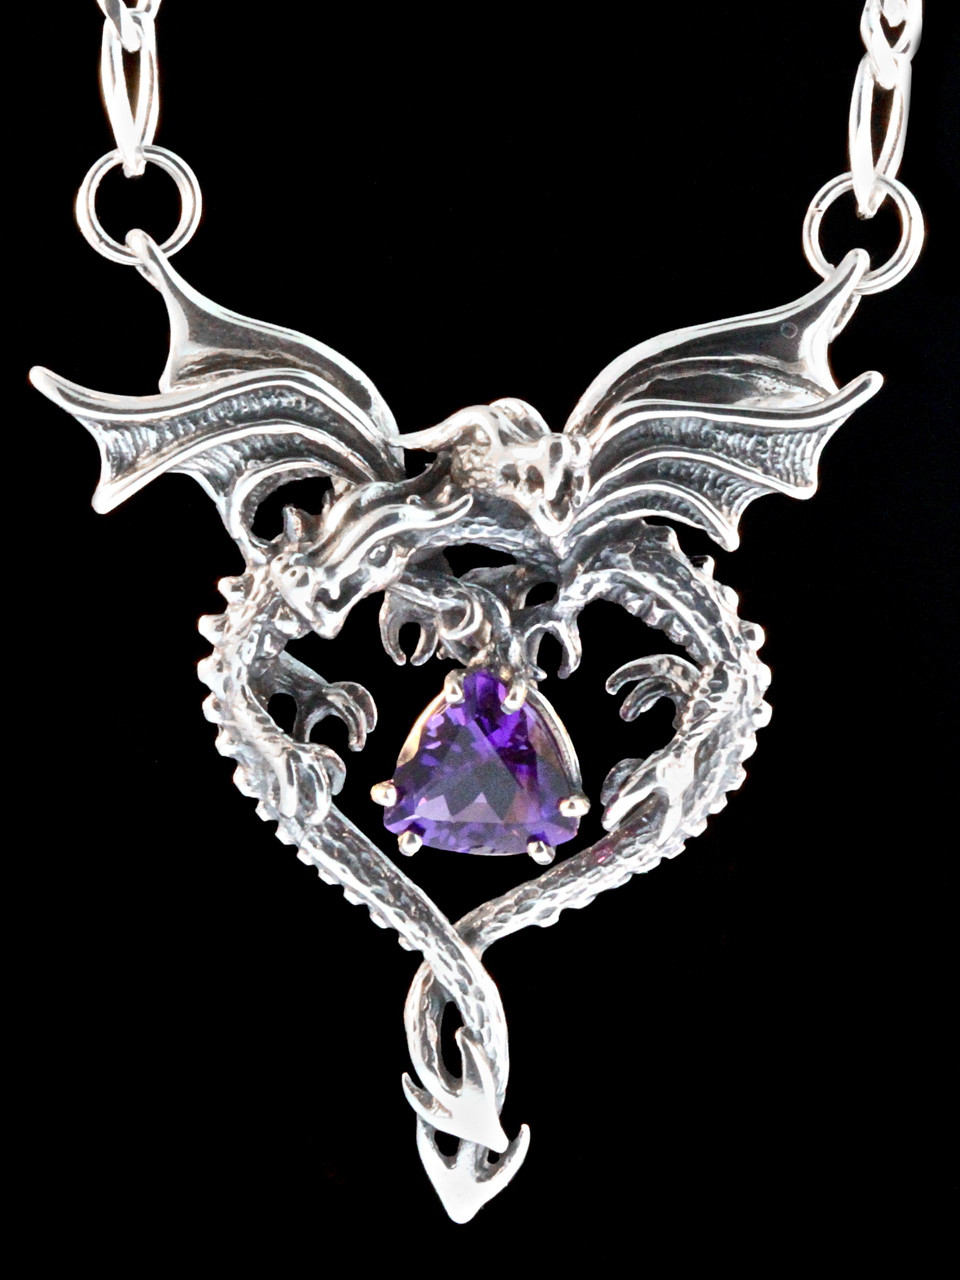 Dragon heart pendant with amethyst jewelry dragon heart pendant with amethyst mozeypictures Gallery